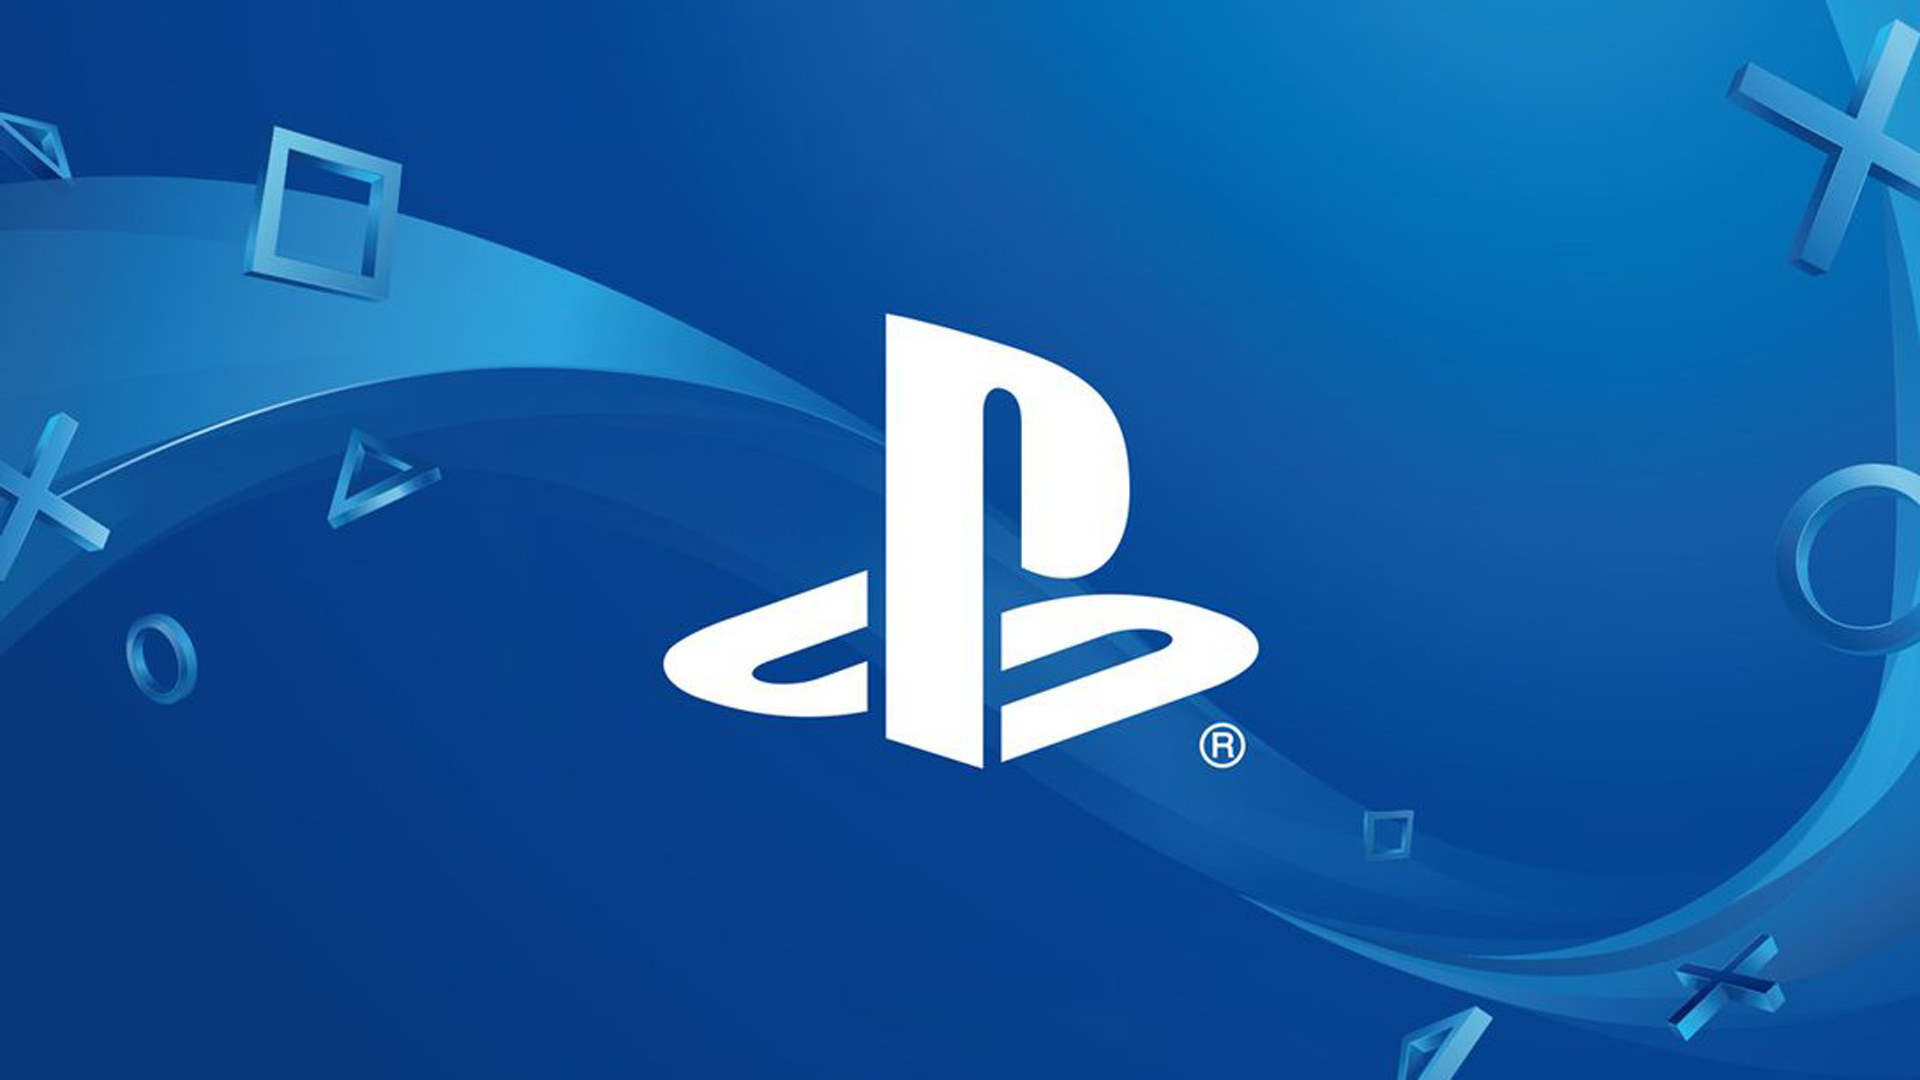 PlayStation 5 to Launch Holiday 2020, Including New Controller with Improved Haptics – Road to VR